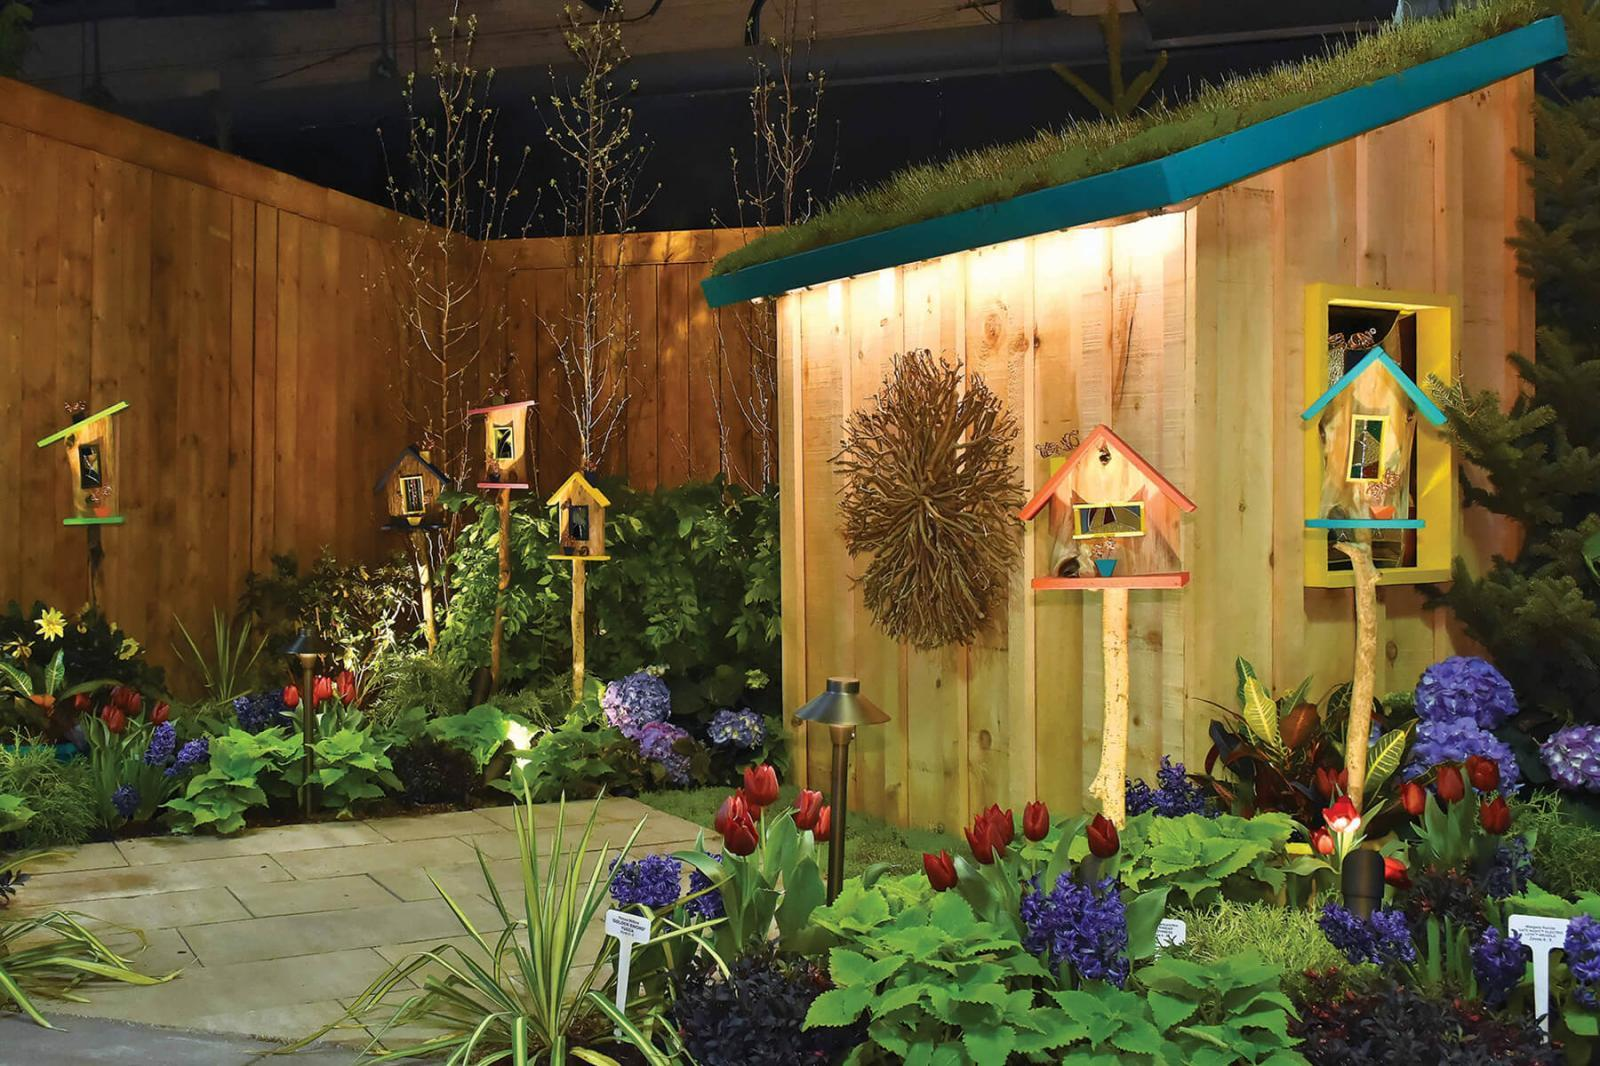 Canada Blooms showcases the green profession